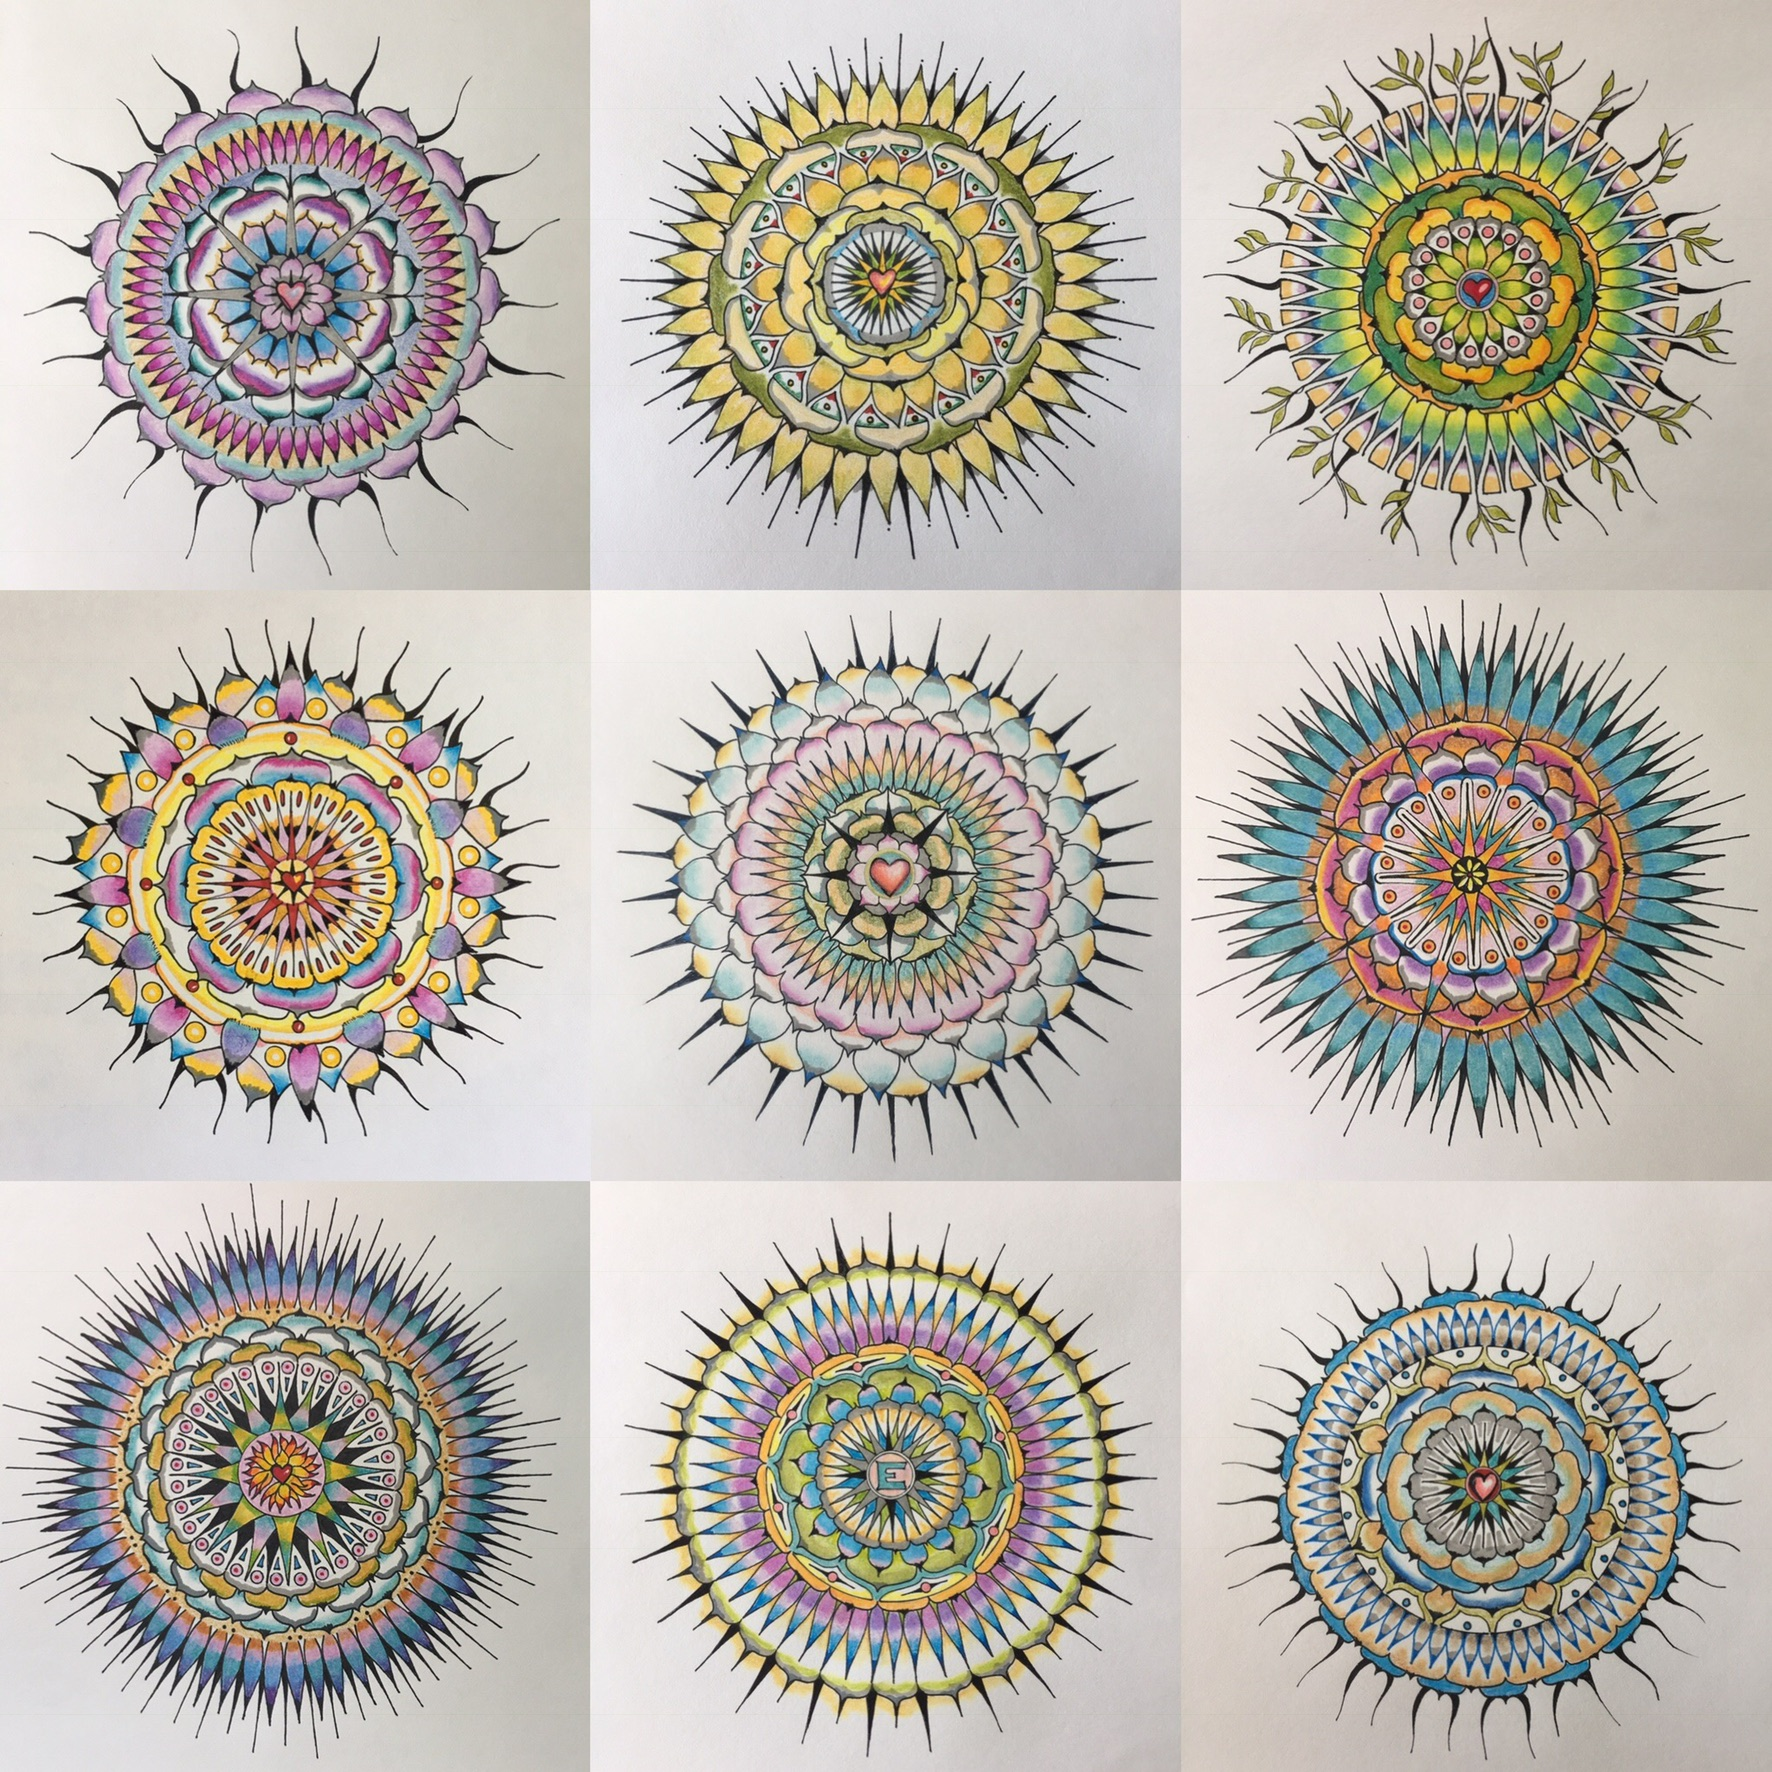 Misc. mandalas, 2018, ink and watercolor on paper, all in private collections